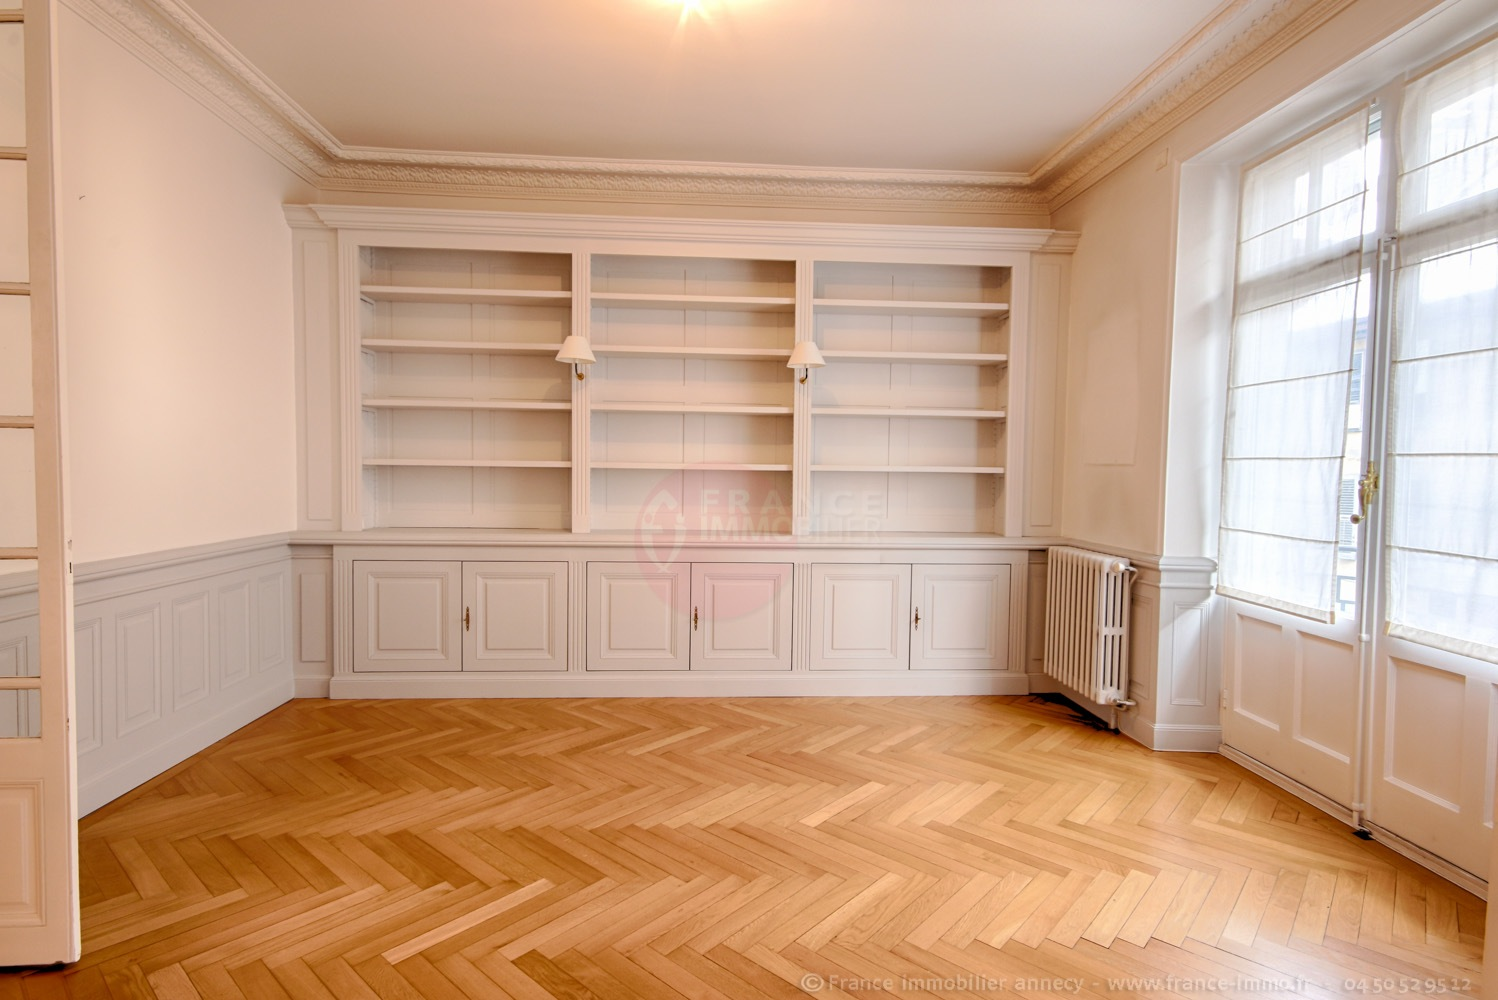 Vente appartement annecy 74000 178m avec 6 pi ce s for Achat maison annecy